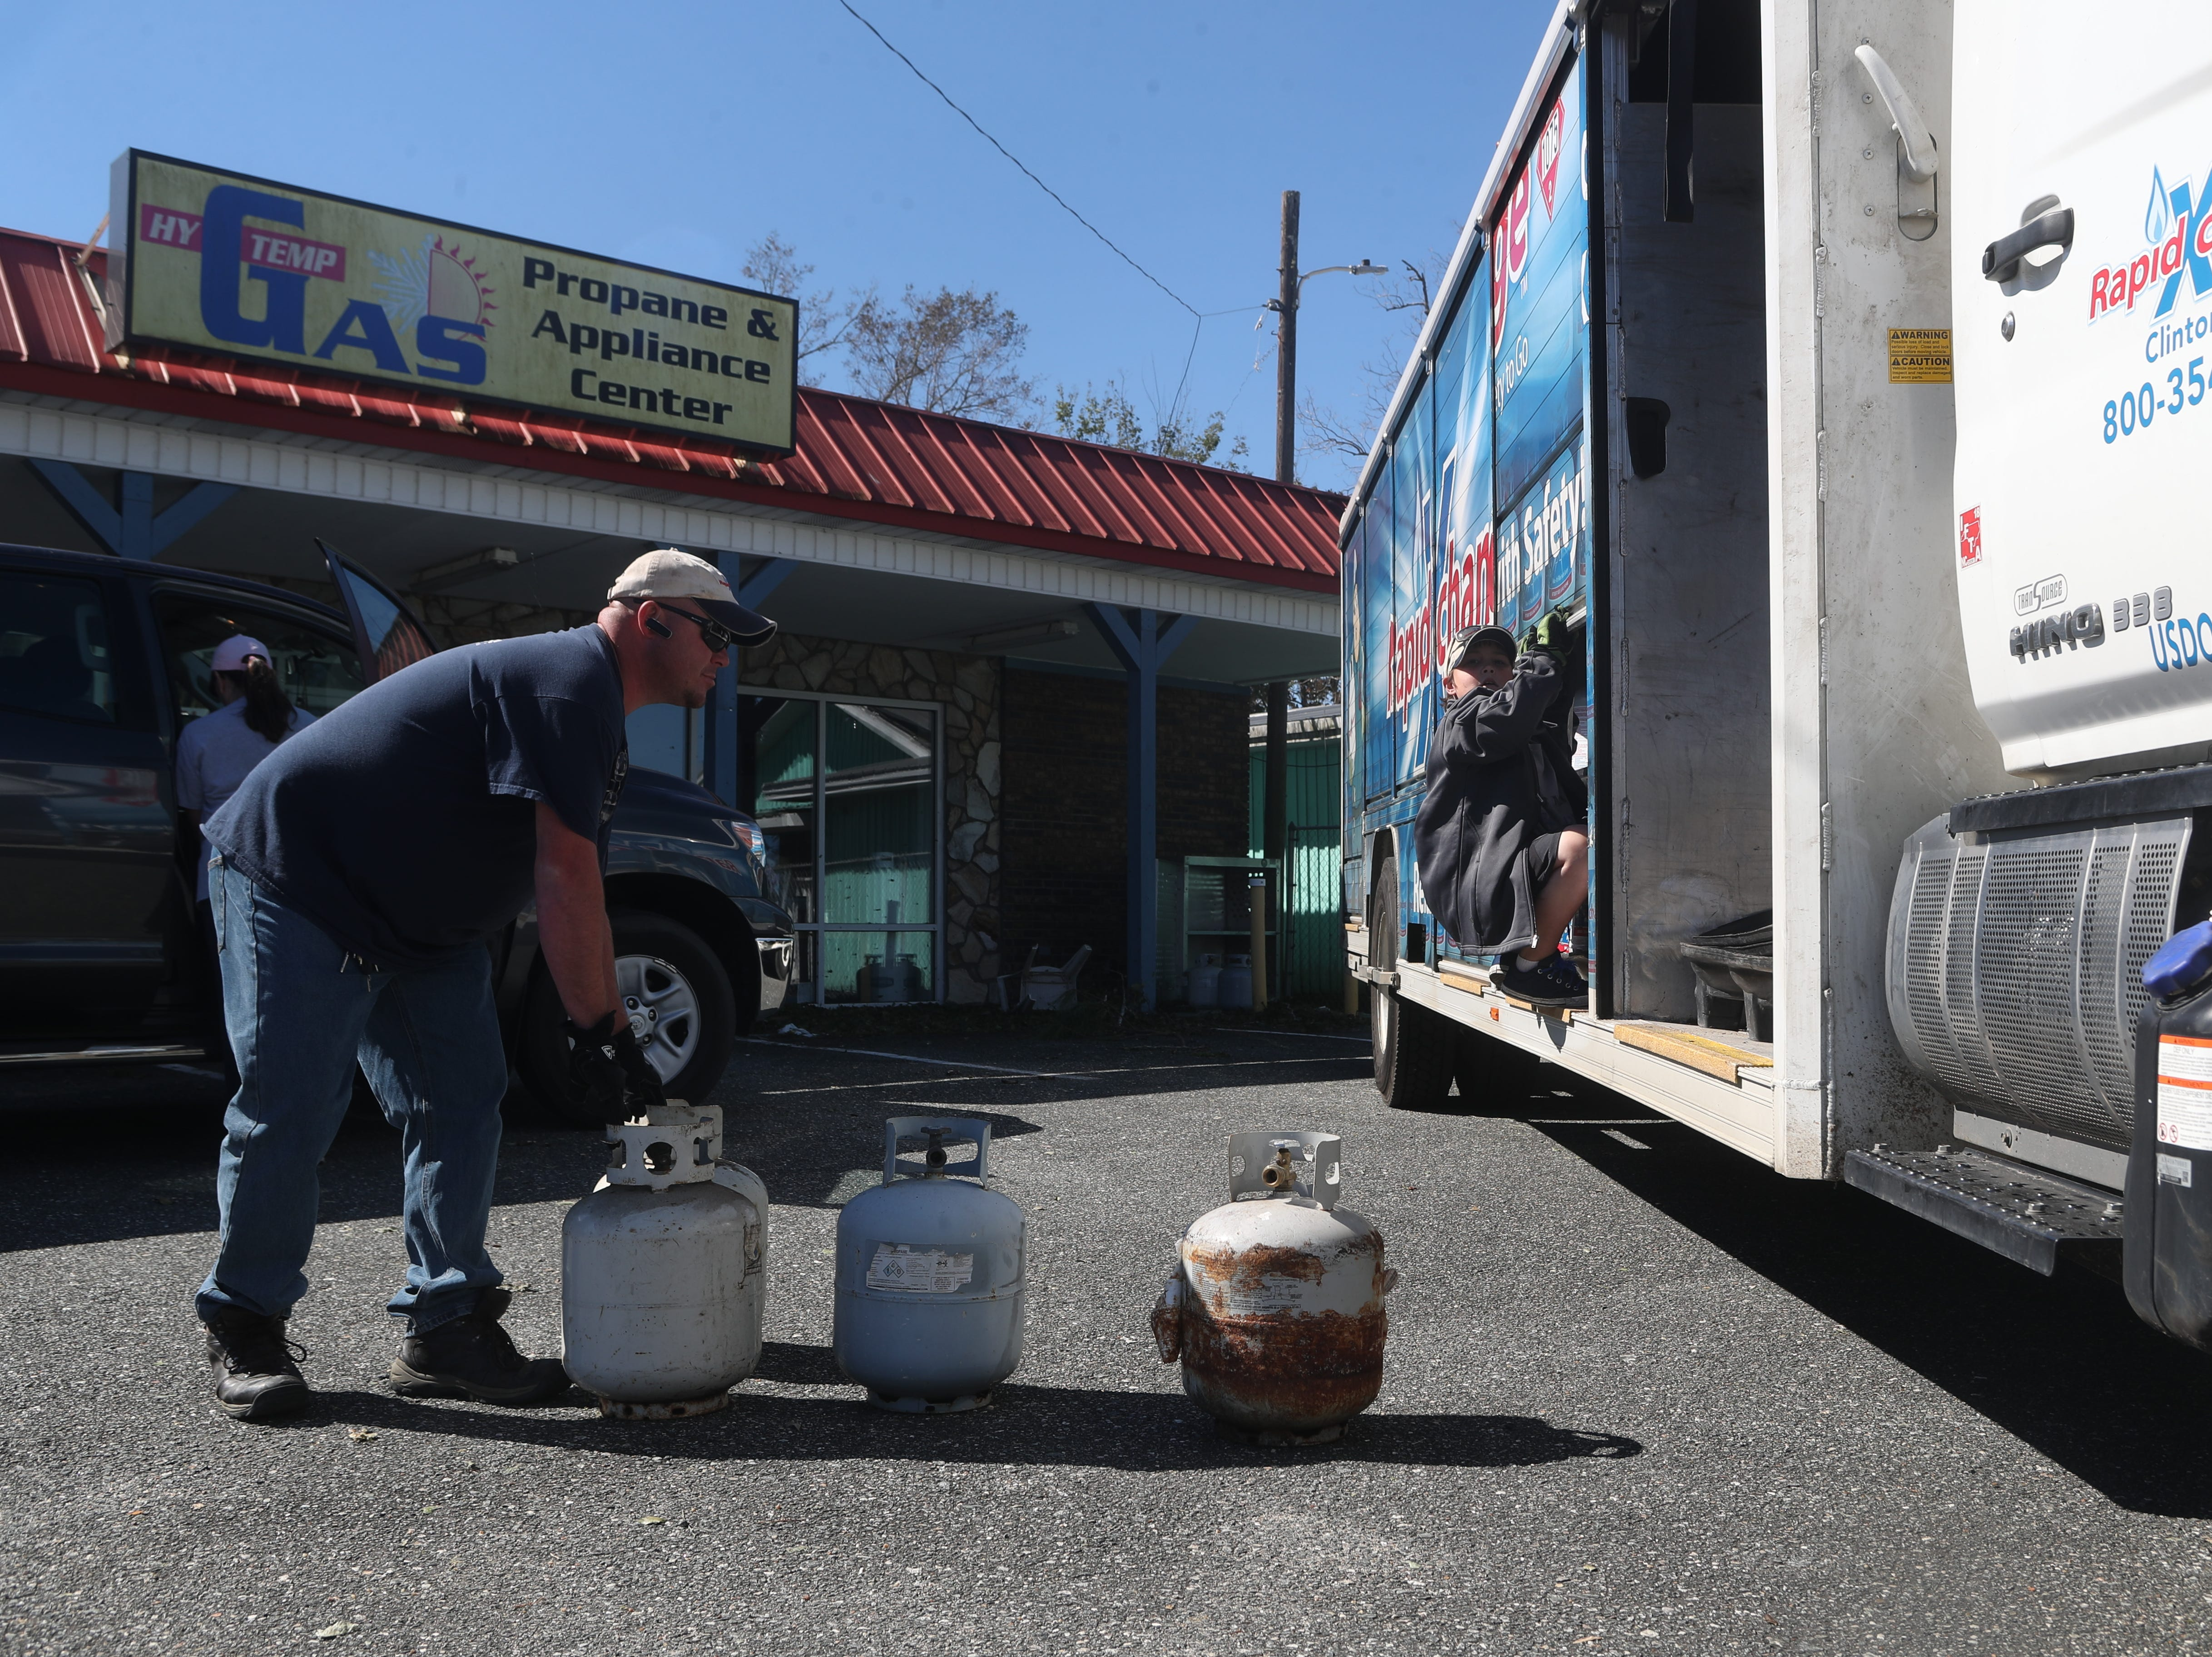 Trent Killingsworth and his son Trent, 10, deliver propane in Blountstown, Fla. in the aftermath of Hurricane Michael Friday, Oct. 12, 2018.